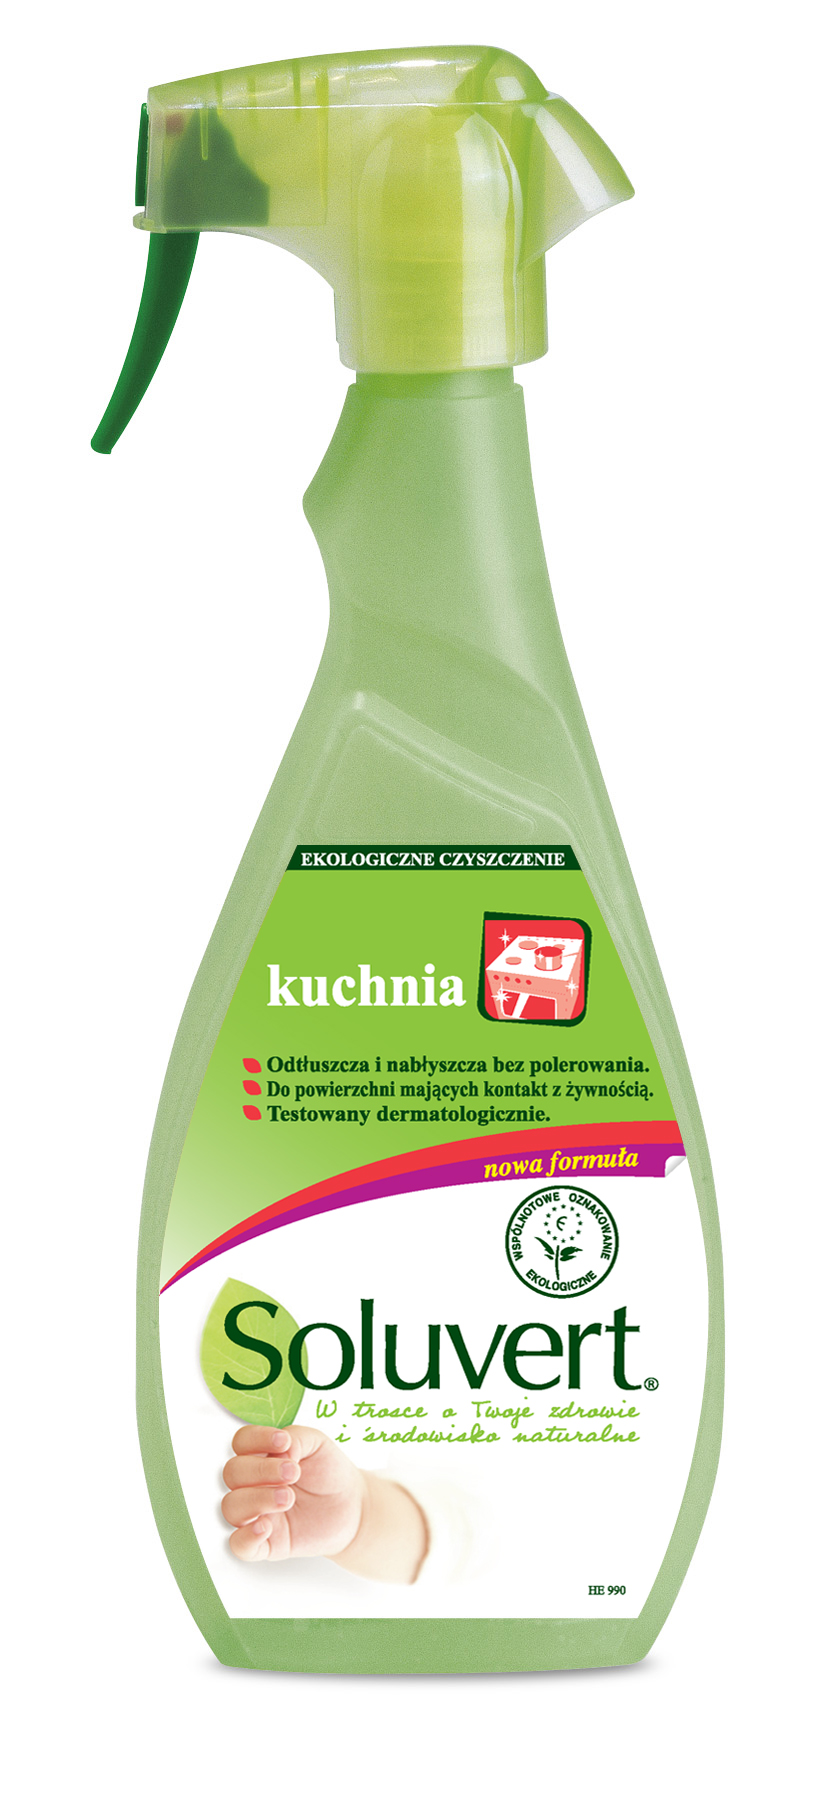 Soluvent The Ecological Degreaser For Kitchen Surface 500ml